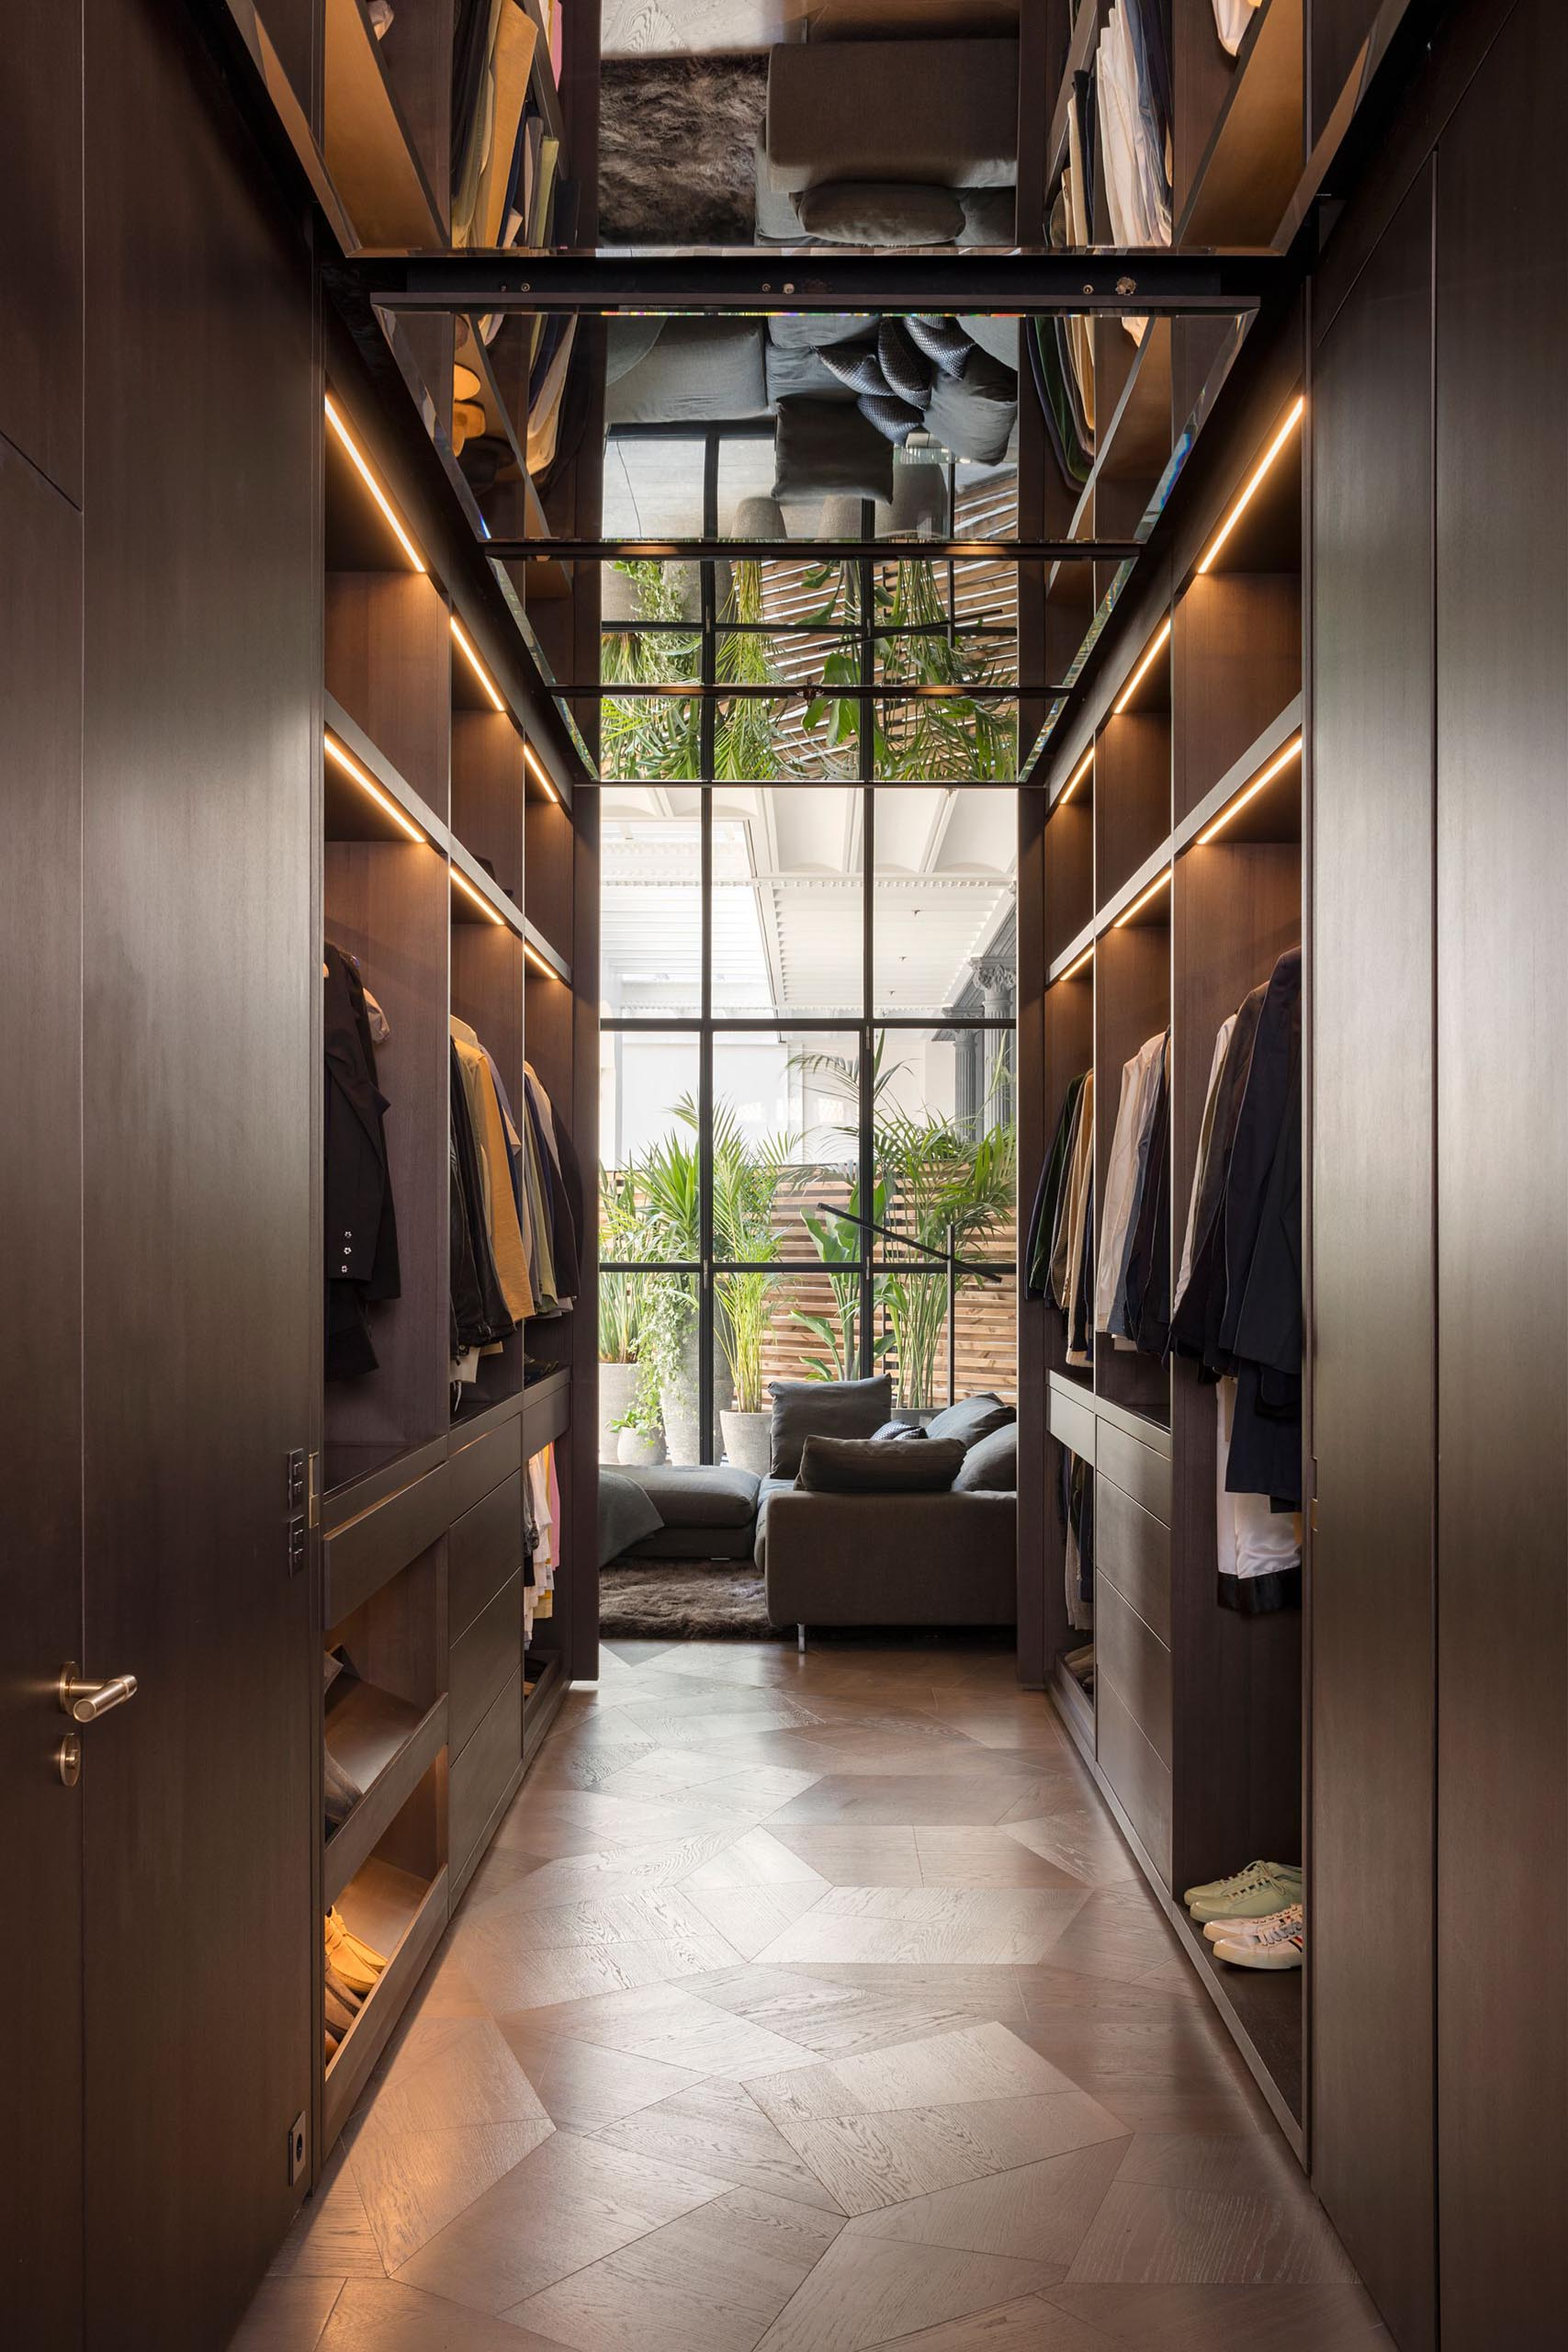 A walk-through closet with plenty of hanging space highlighted by LED strips.